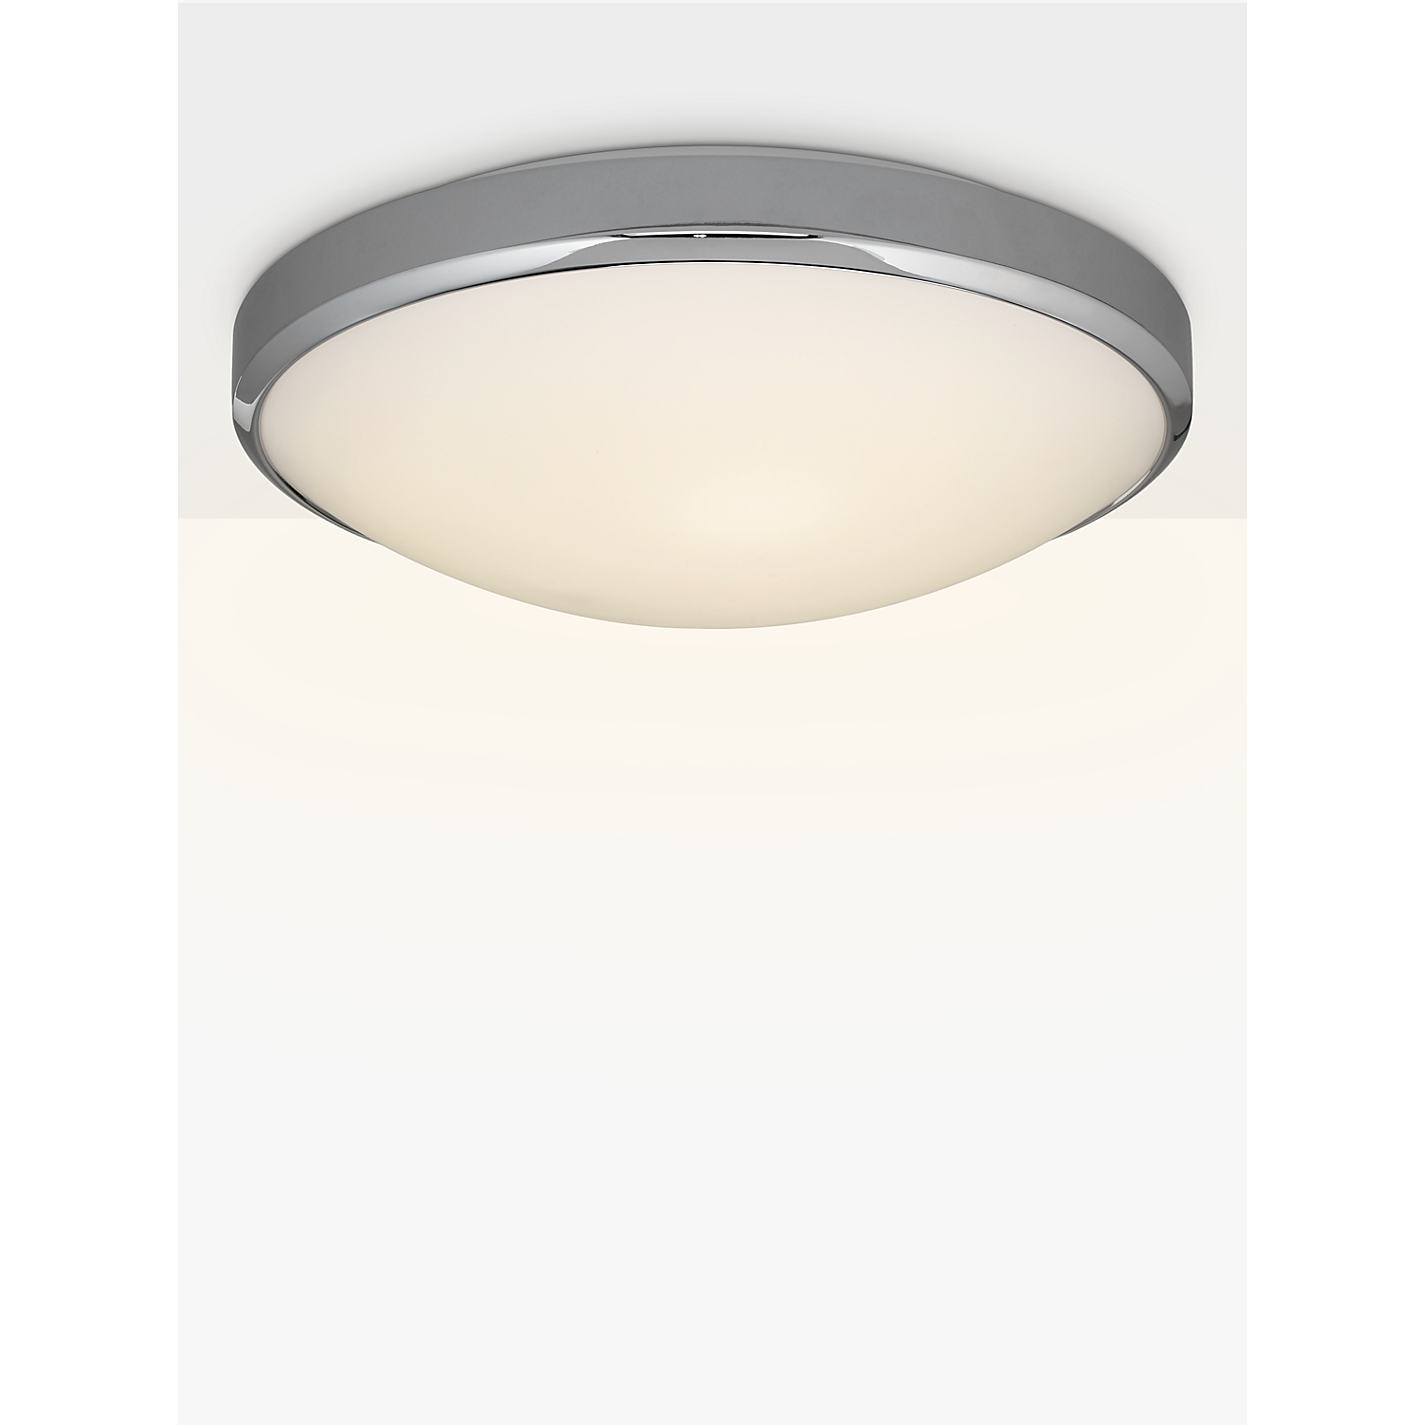 Bathroom Light Fixtures John Lewis buy astro osaka led bathroom light, white/chrome | john lewis